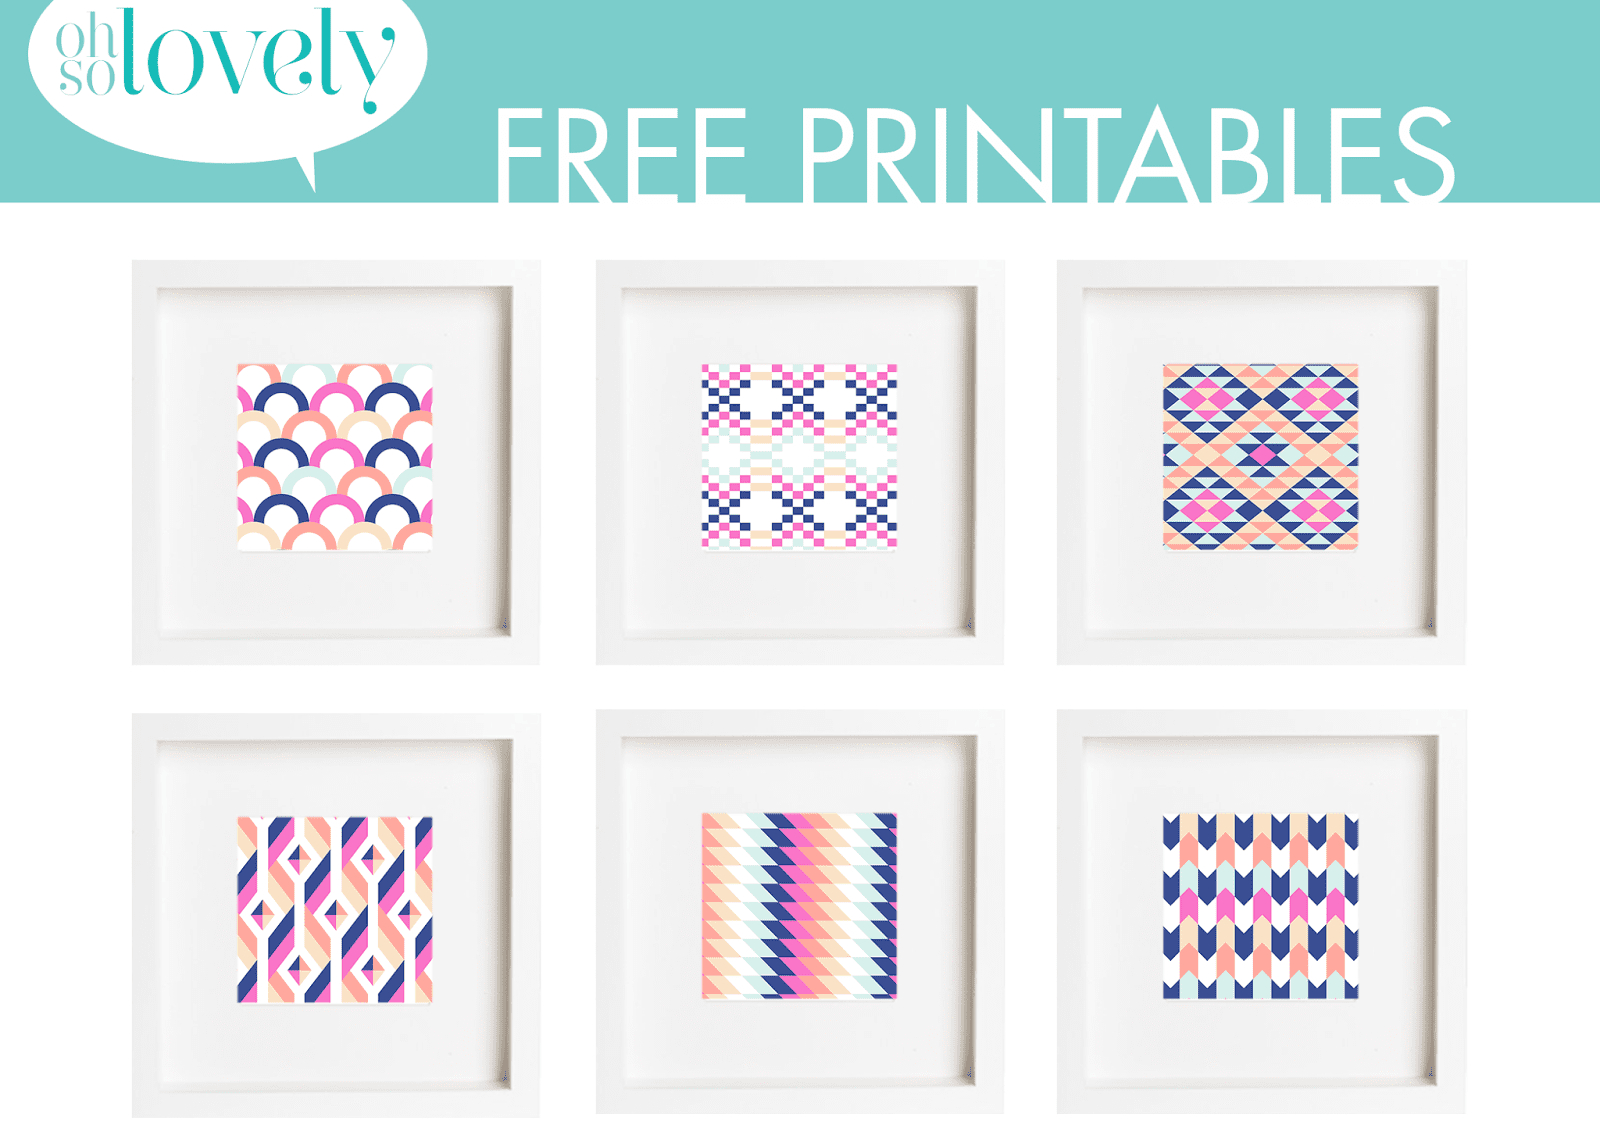 11 Places To Find Free, Printable Wall Art Online - Free Printable Art